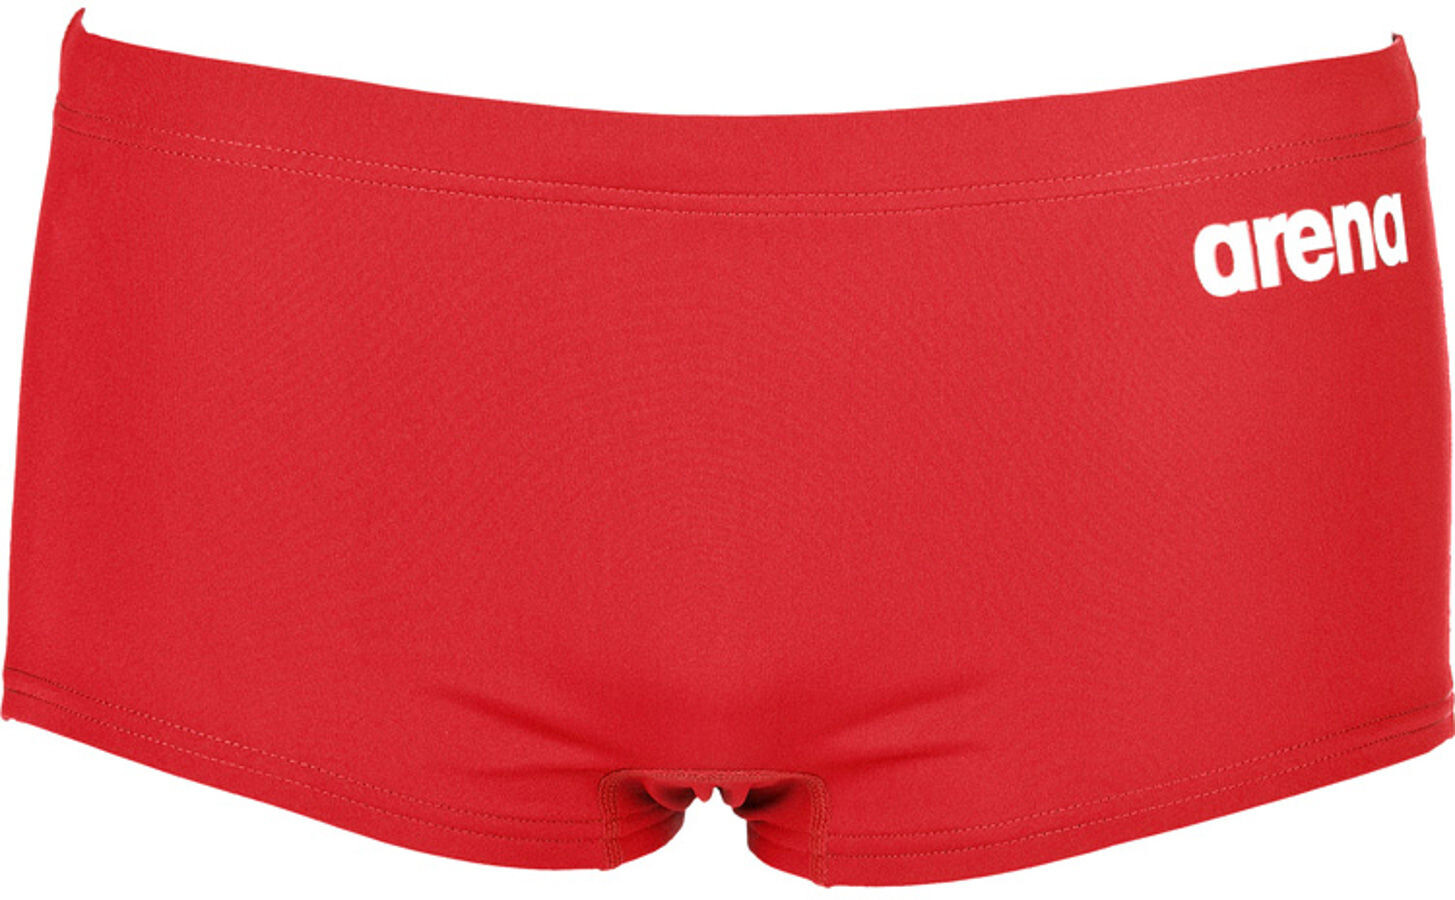 arena Solid Squared Shorts Herrer, red-white (2019) | swim_clothes